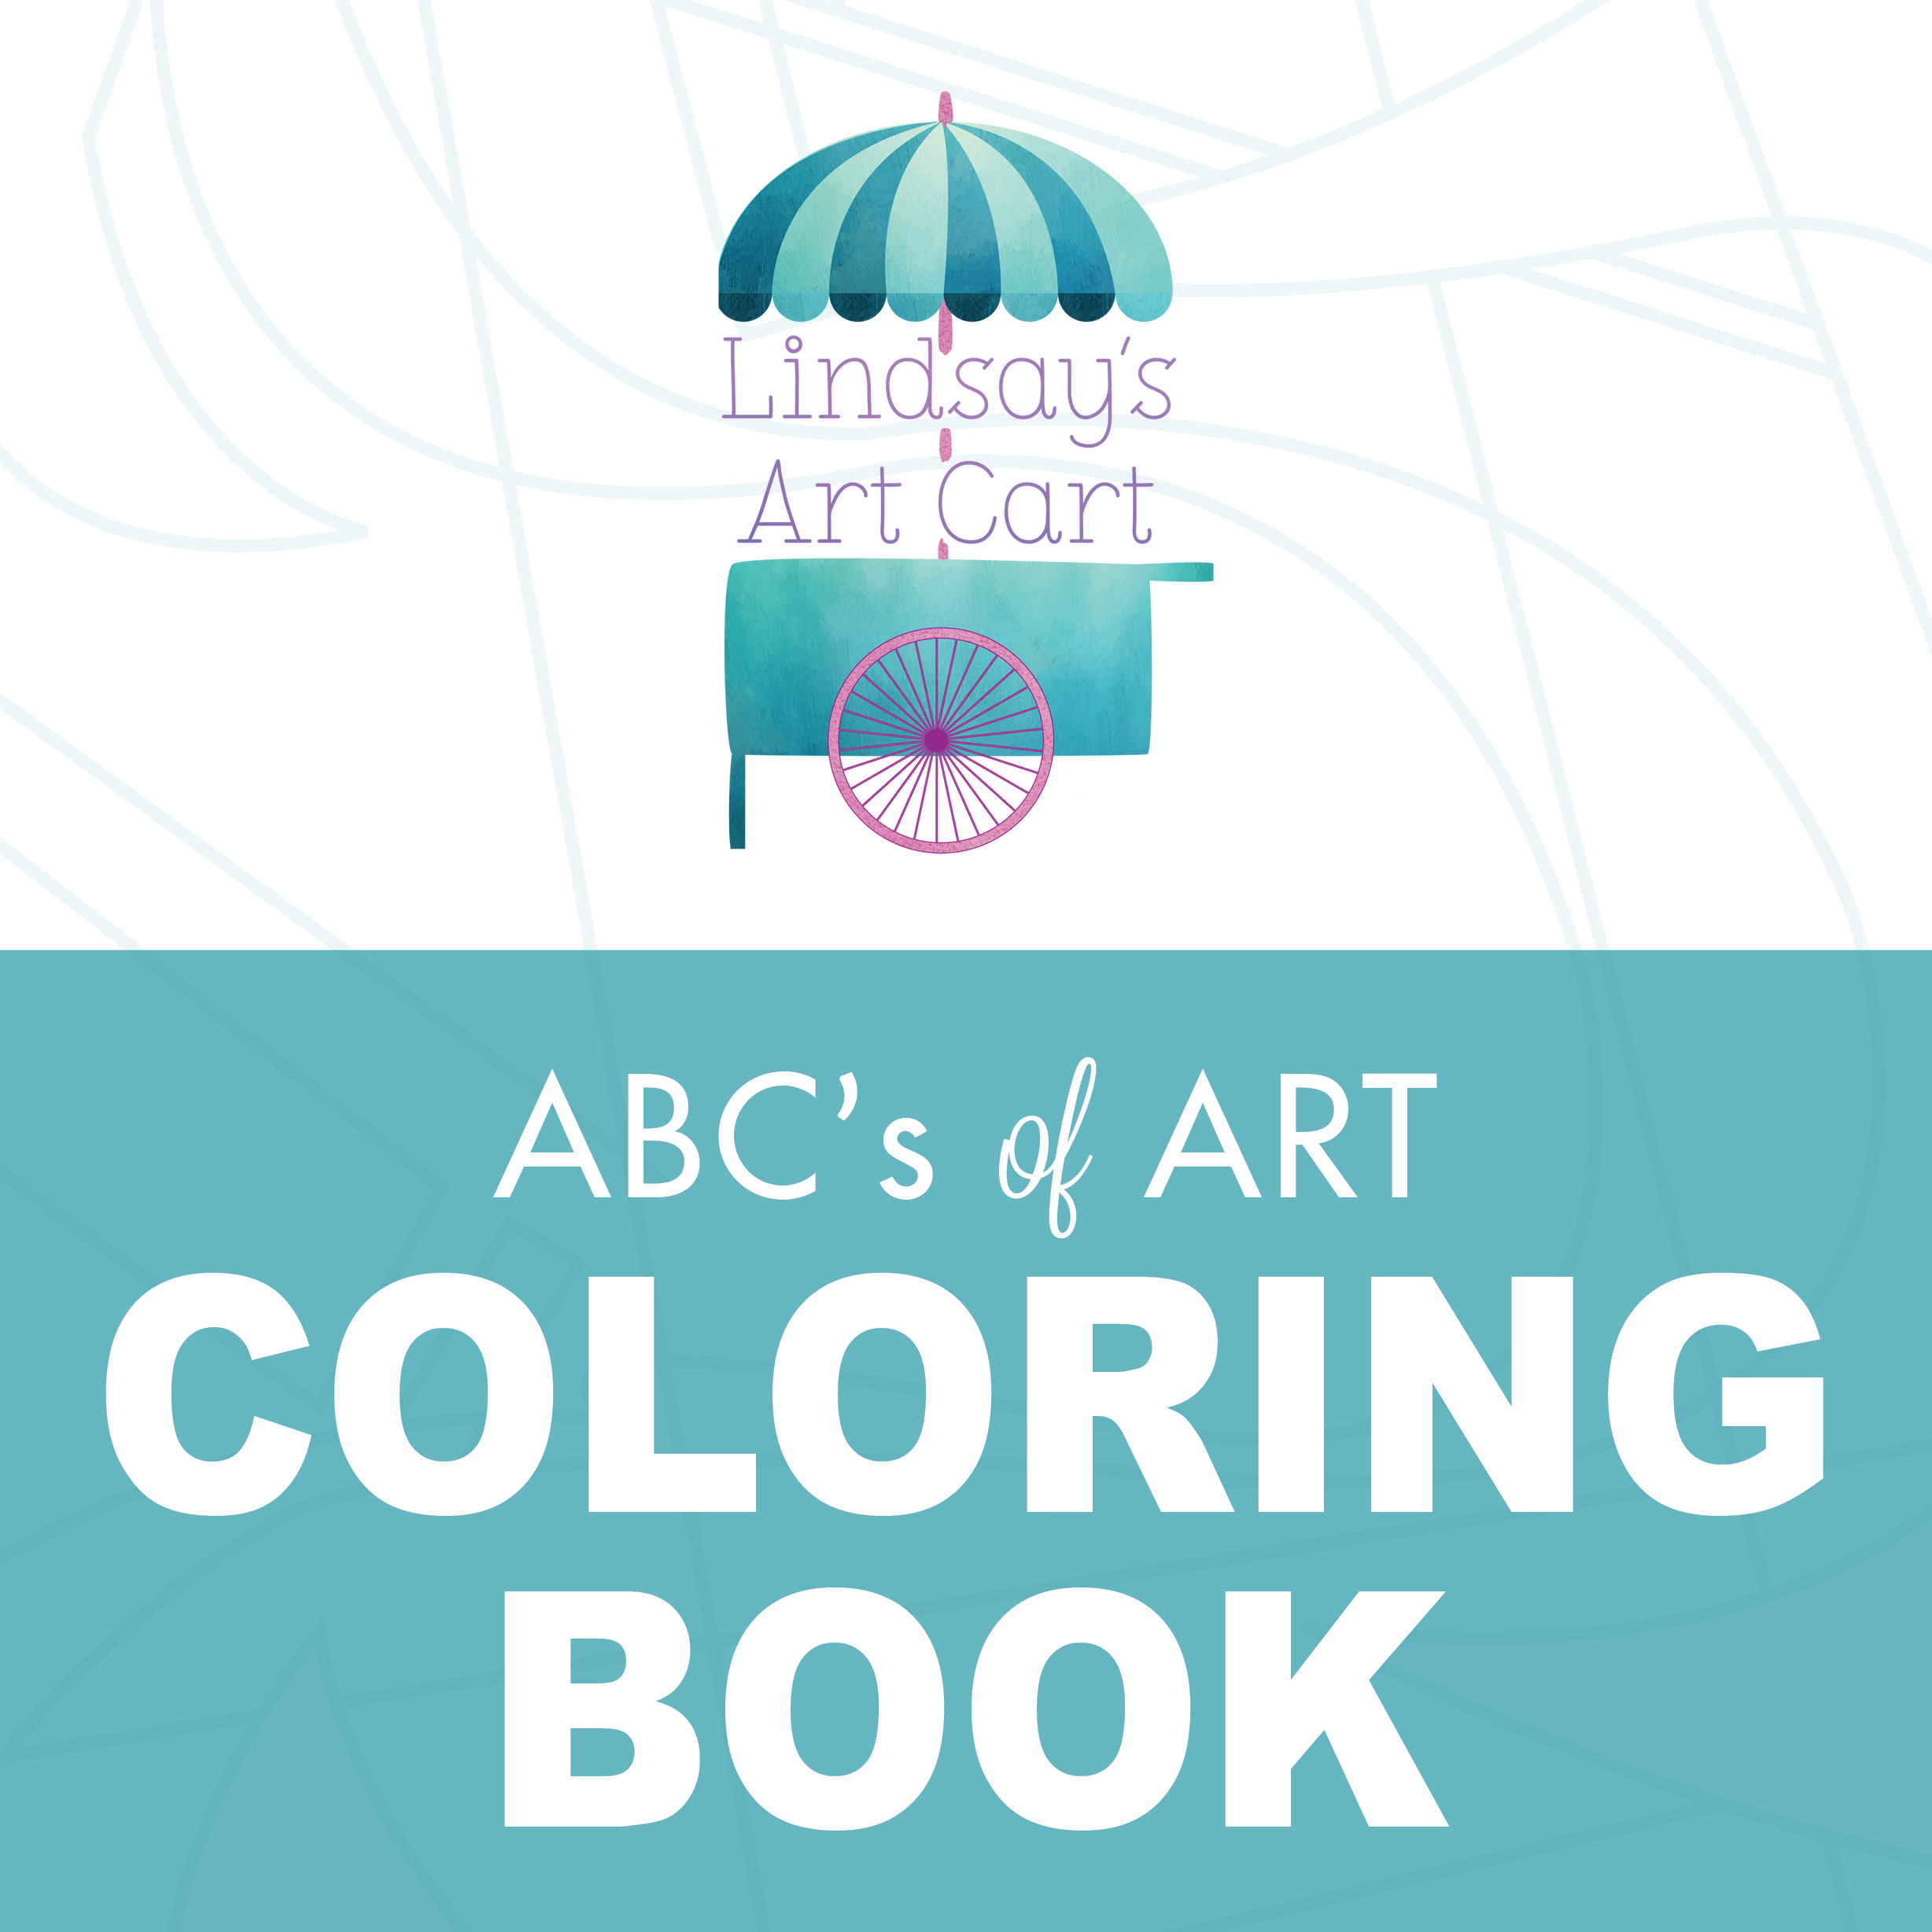 LAC-Coloring-Book1.jpg